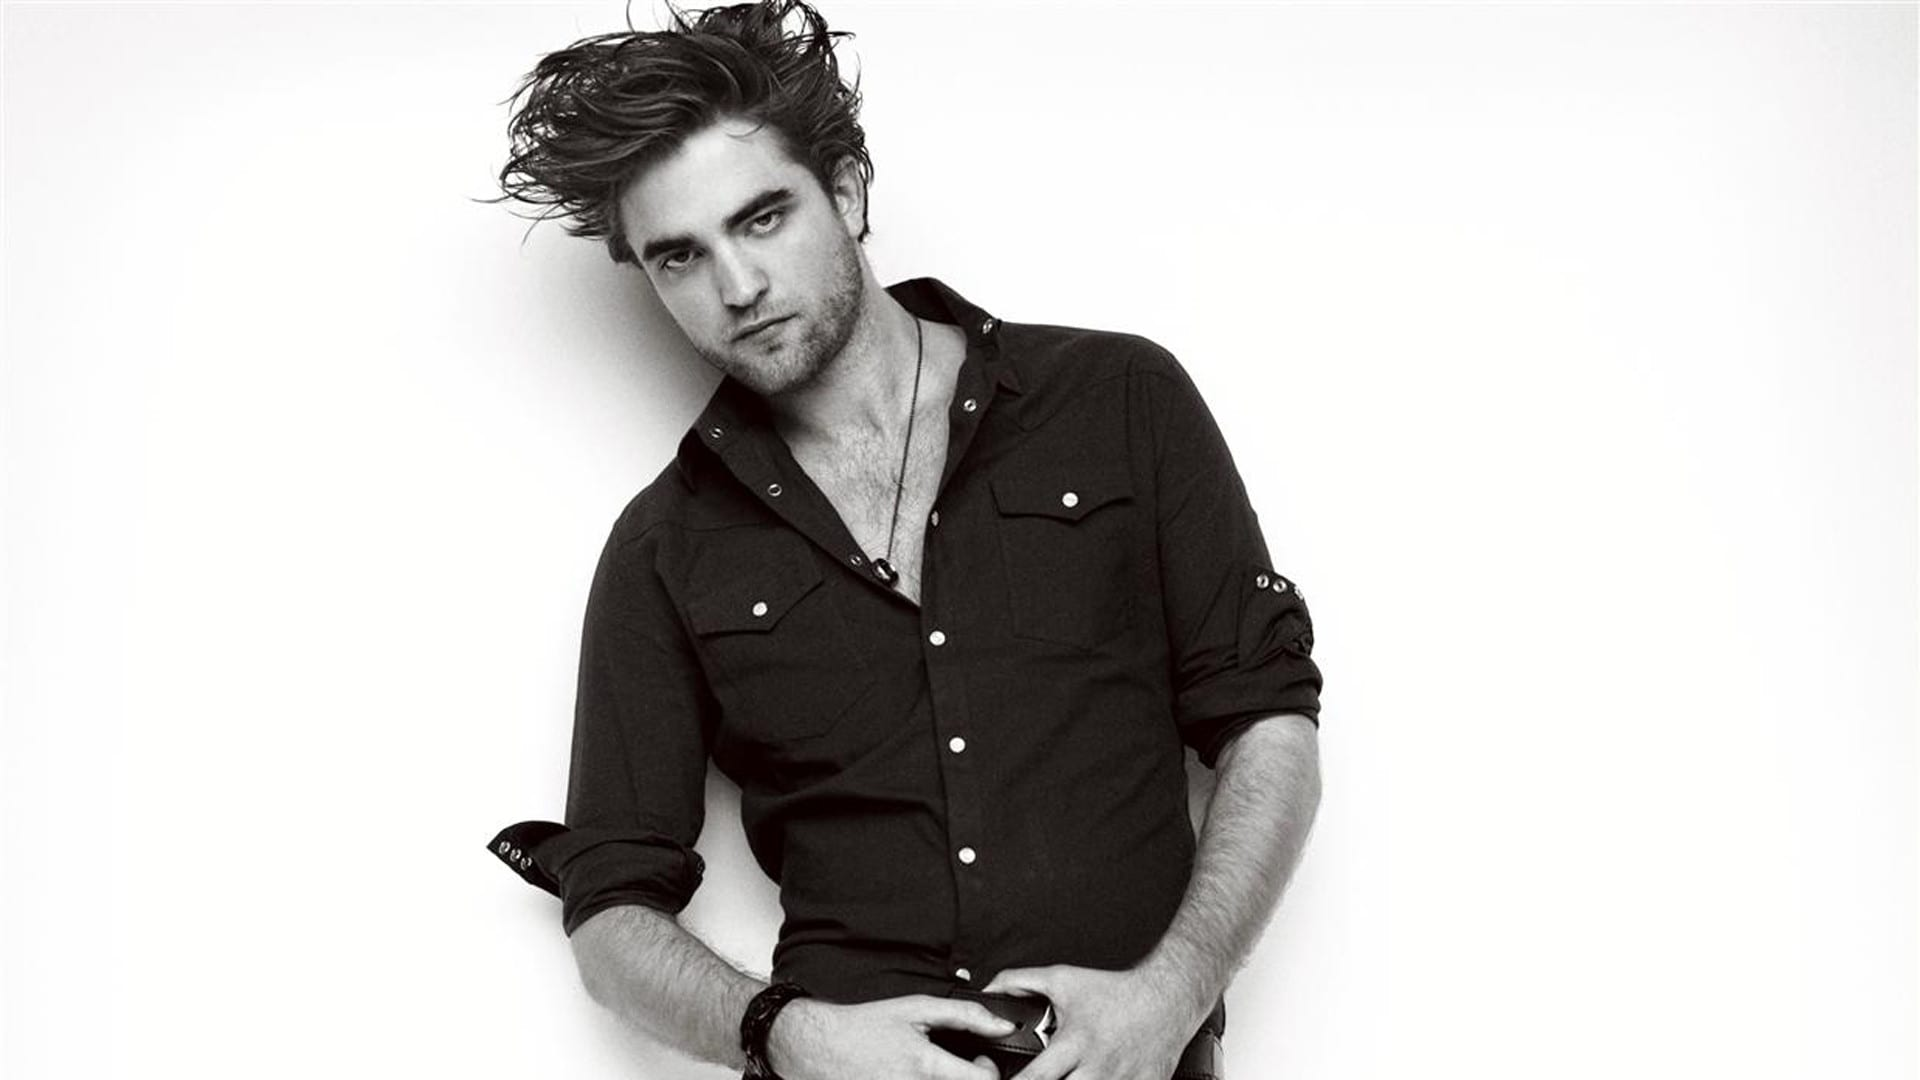 Pattinson doesn't work out